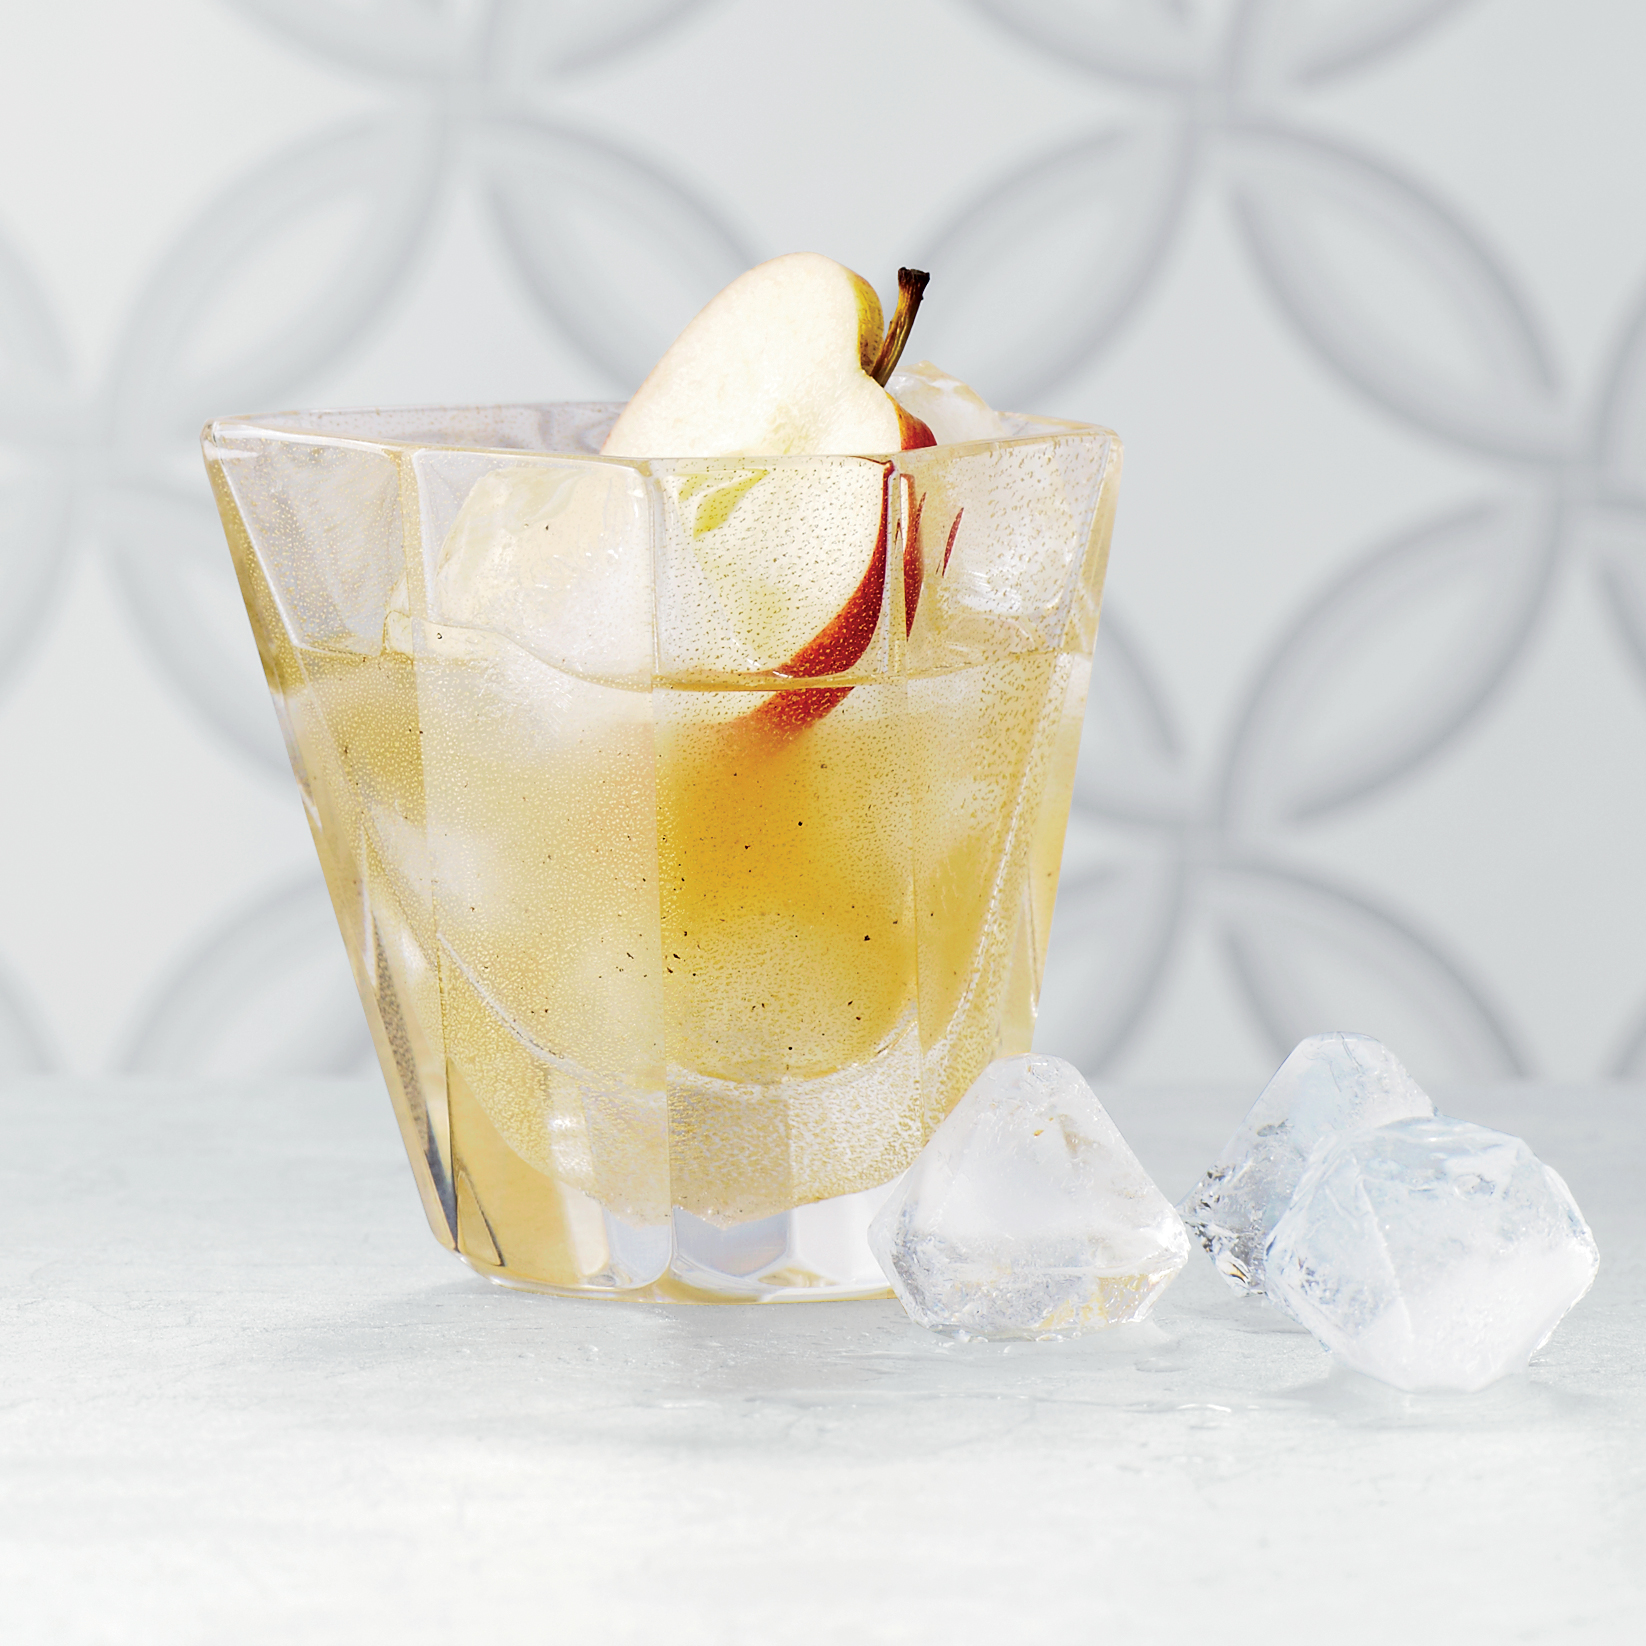 Ginger's Lost Island Christmas Cocktail Recipe